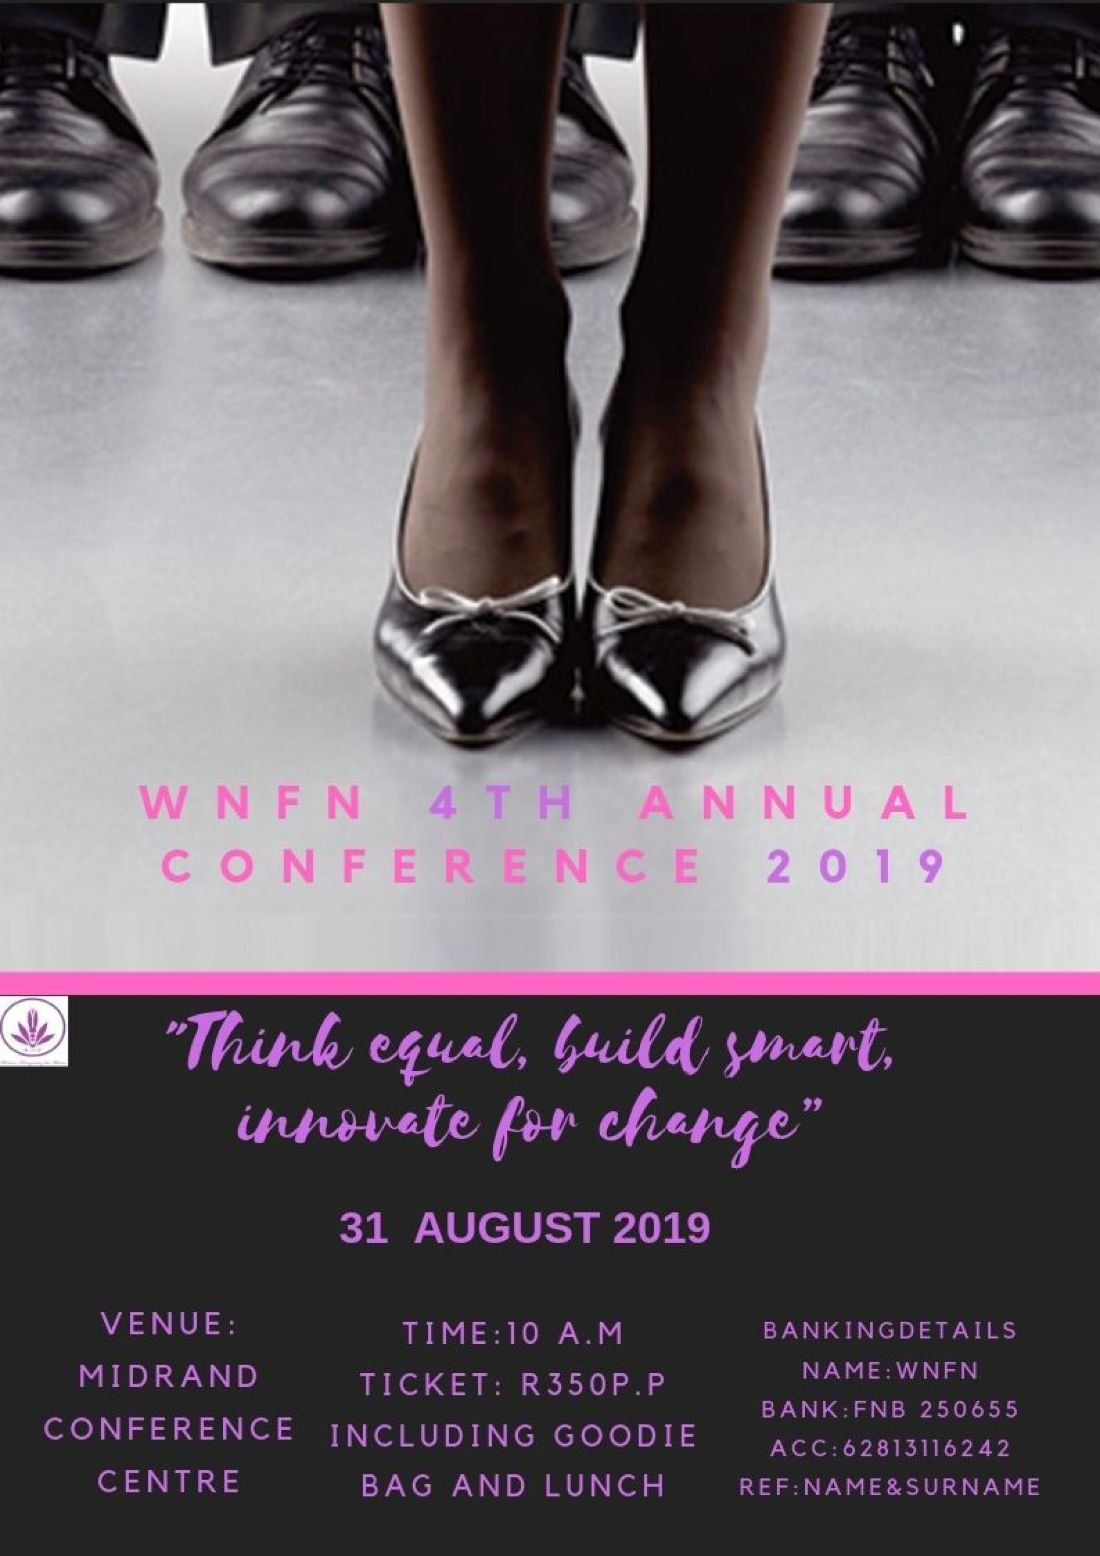 Women Navigating the future Network 4th Annual Conference